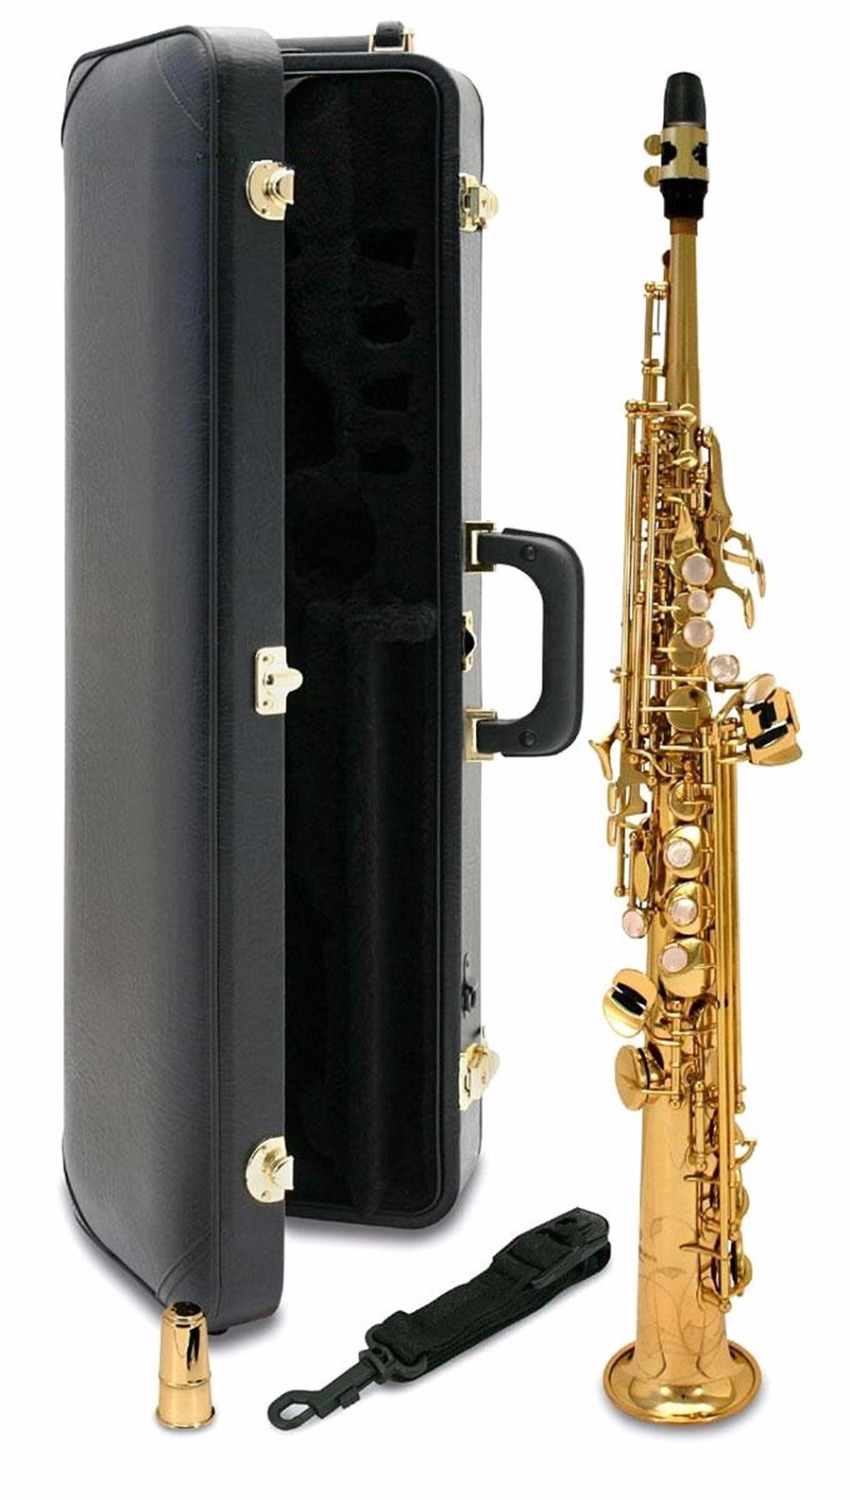 New Japan YANAGISAWA S901 B flat Soprano saxophone High Quality musical instruments YANAGISAWA Soprano professional shipping soprano saxophone bb curved sax high f with case the blue silver keycopper simulati copper simulation soprano saxophone